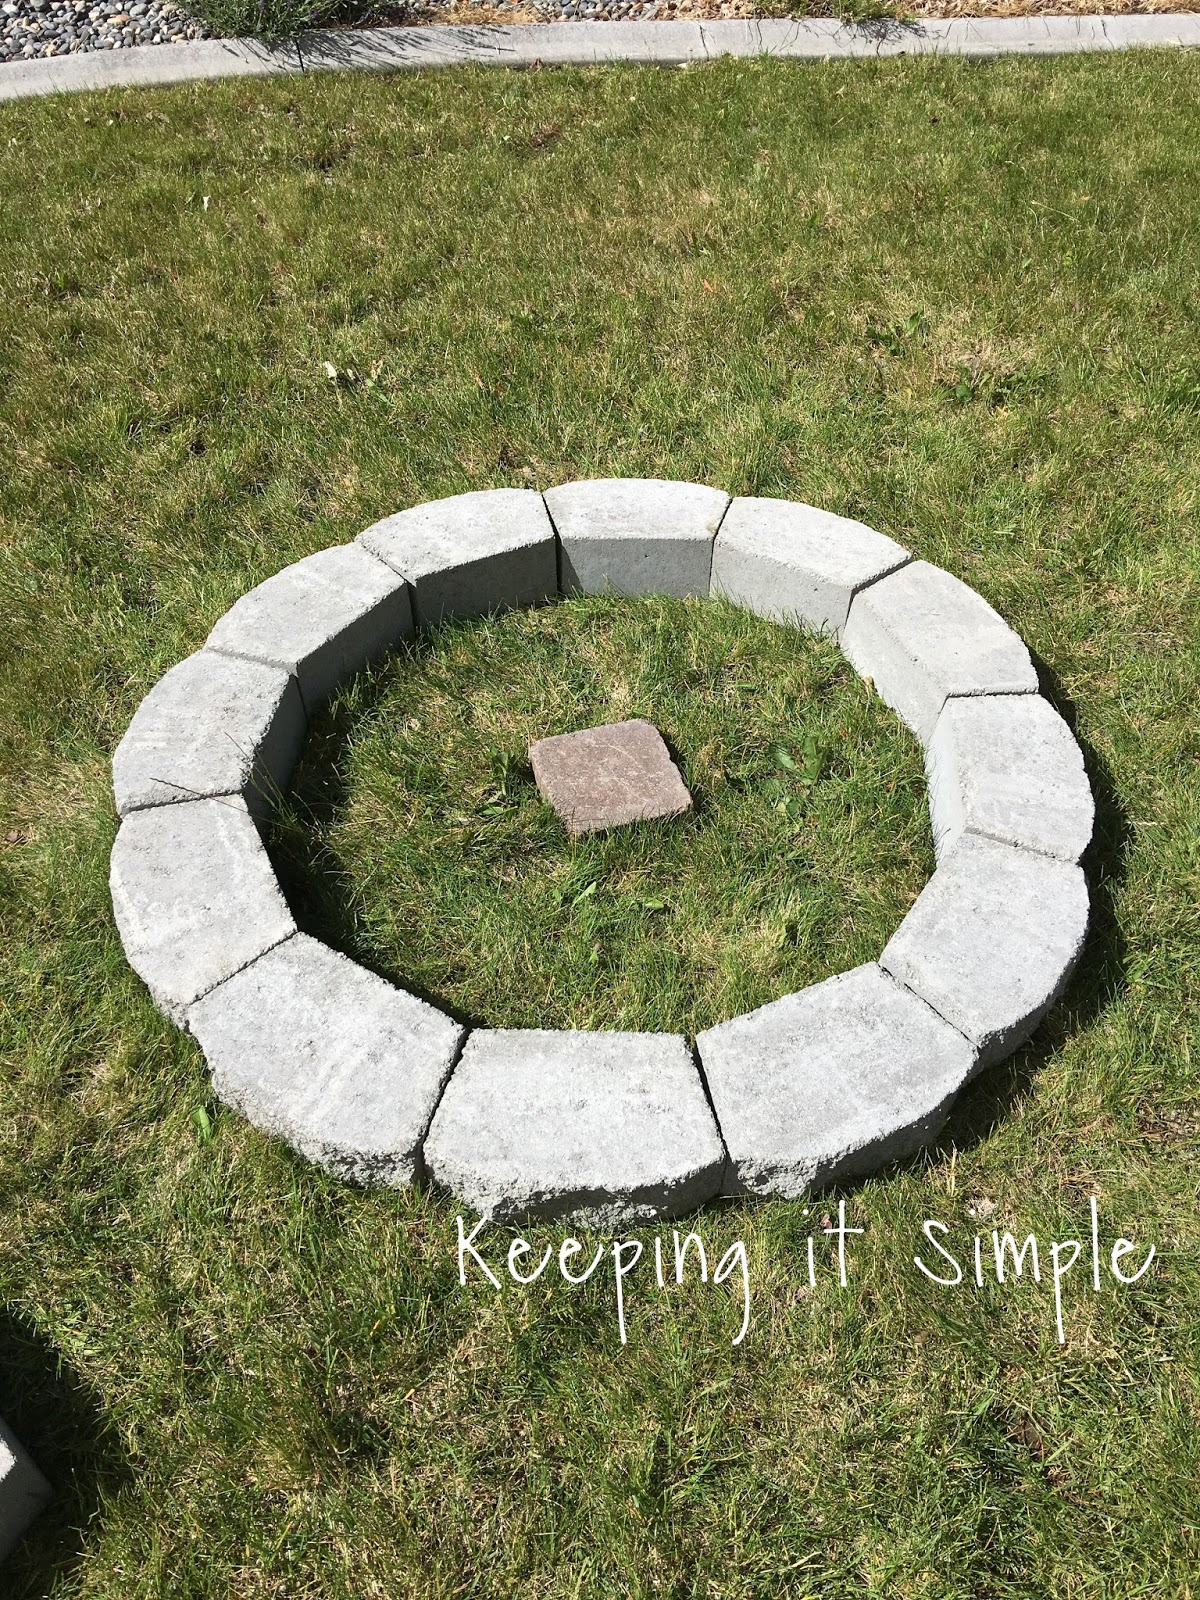 Fire pit designs using pavers